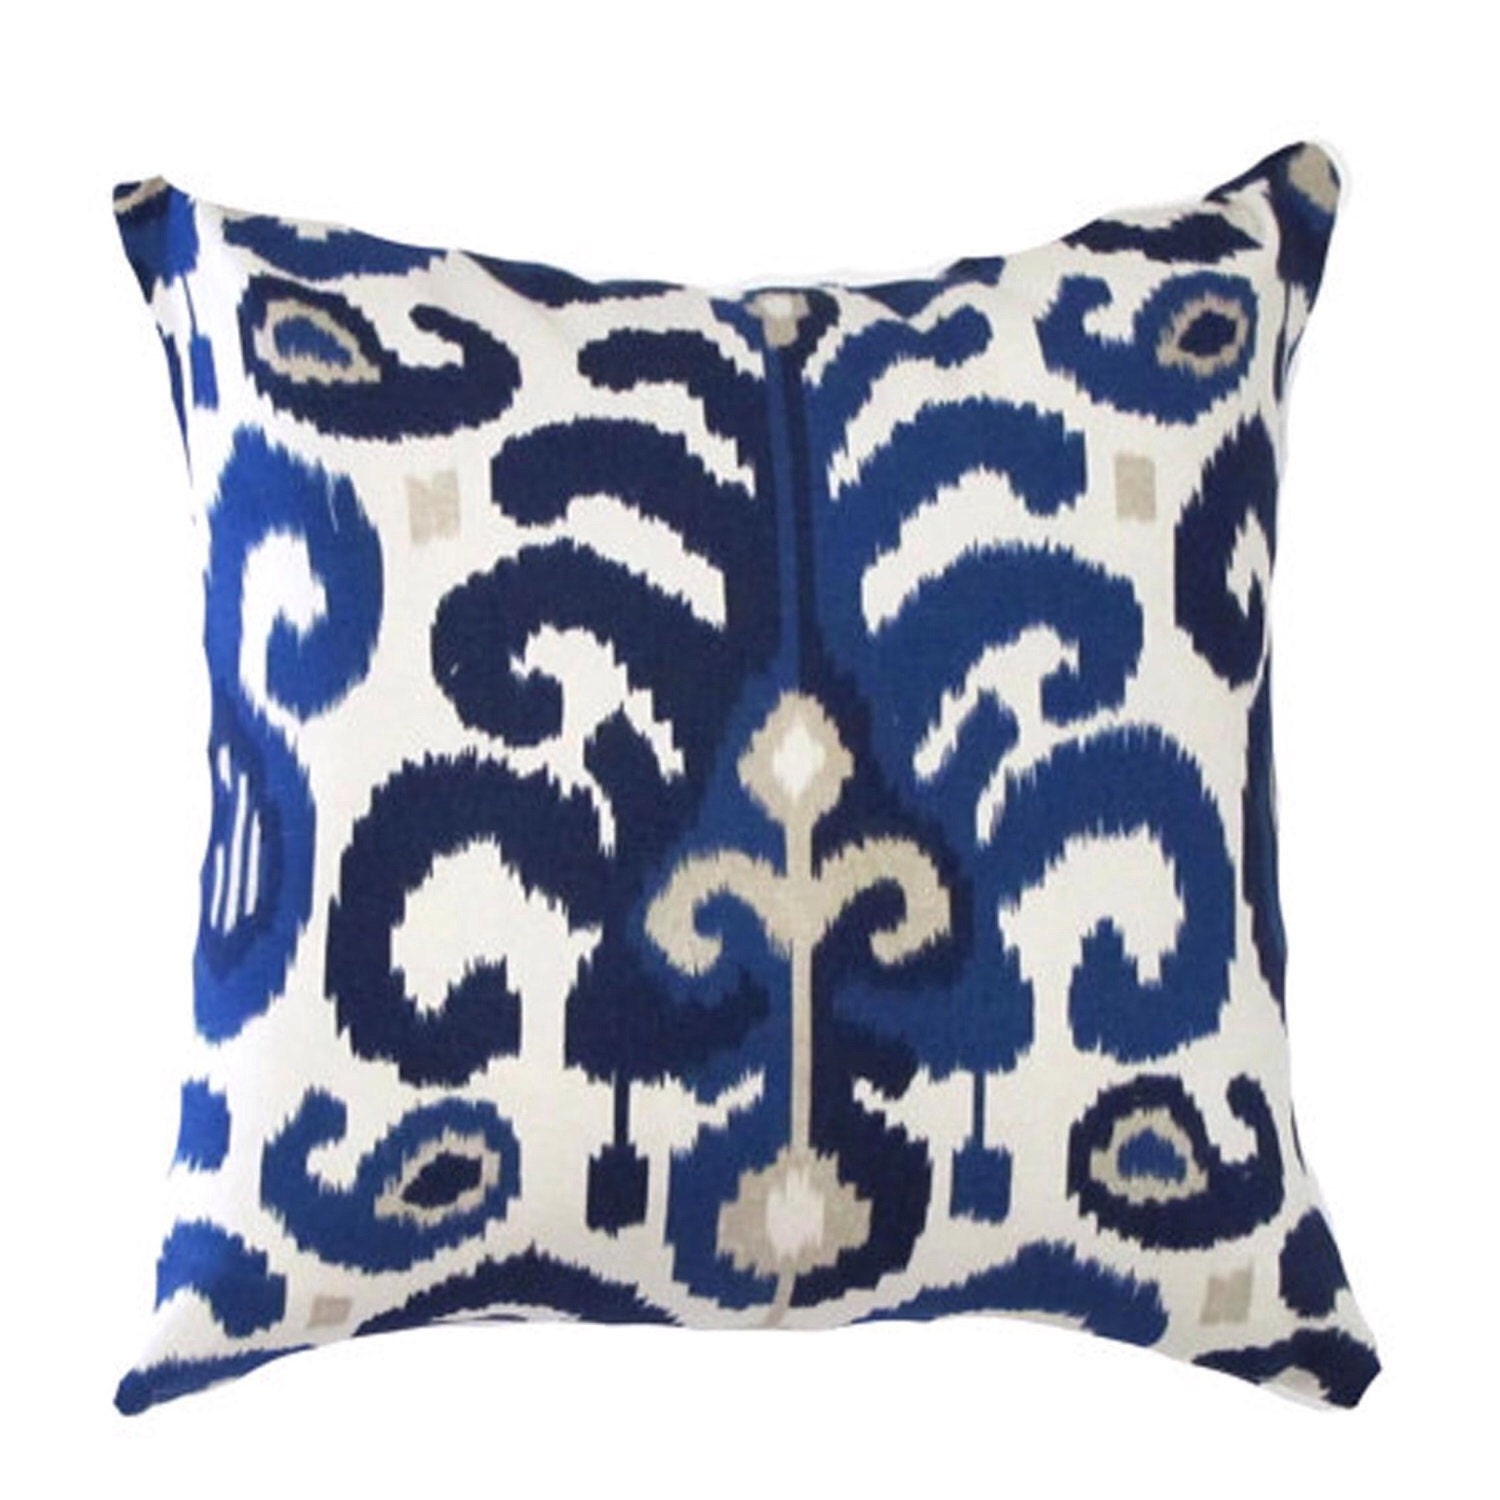 Decorative Pillow Cover Ideas : Designer Pillow Covers by AnyarwotDesigns on Etsy